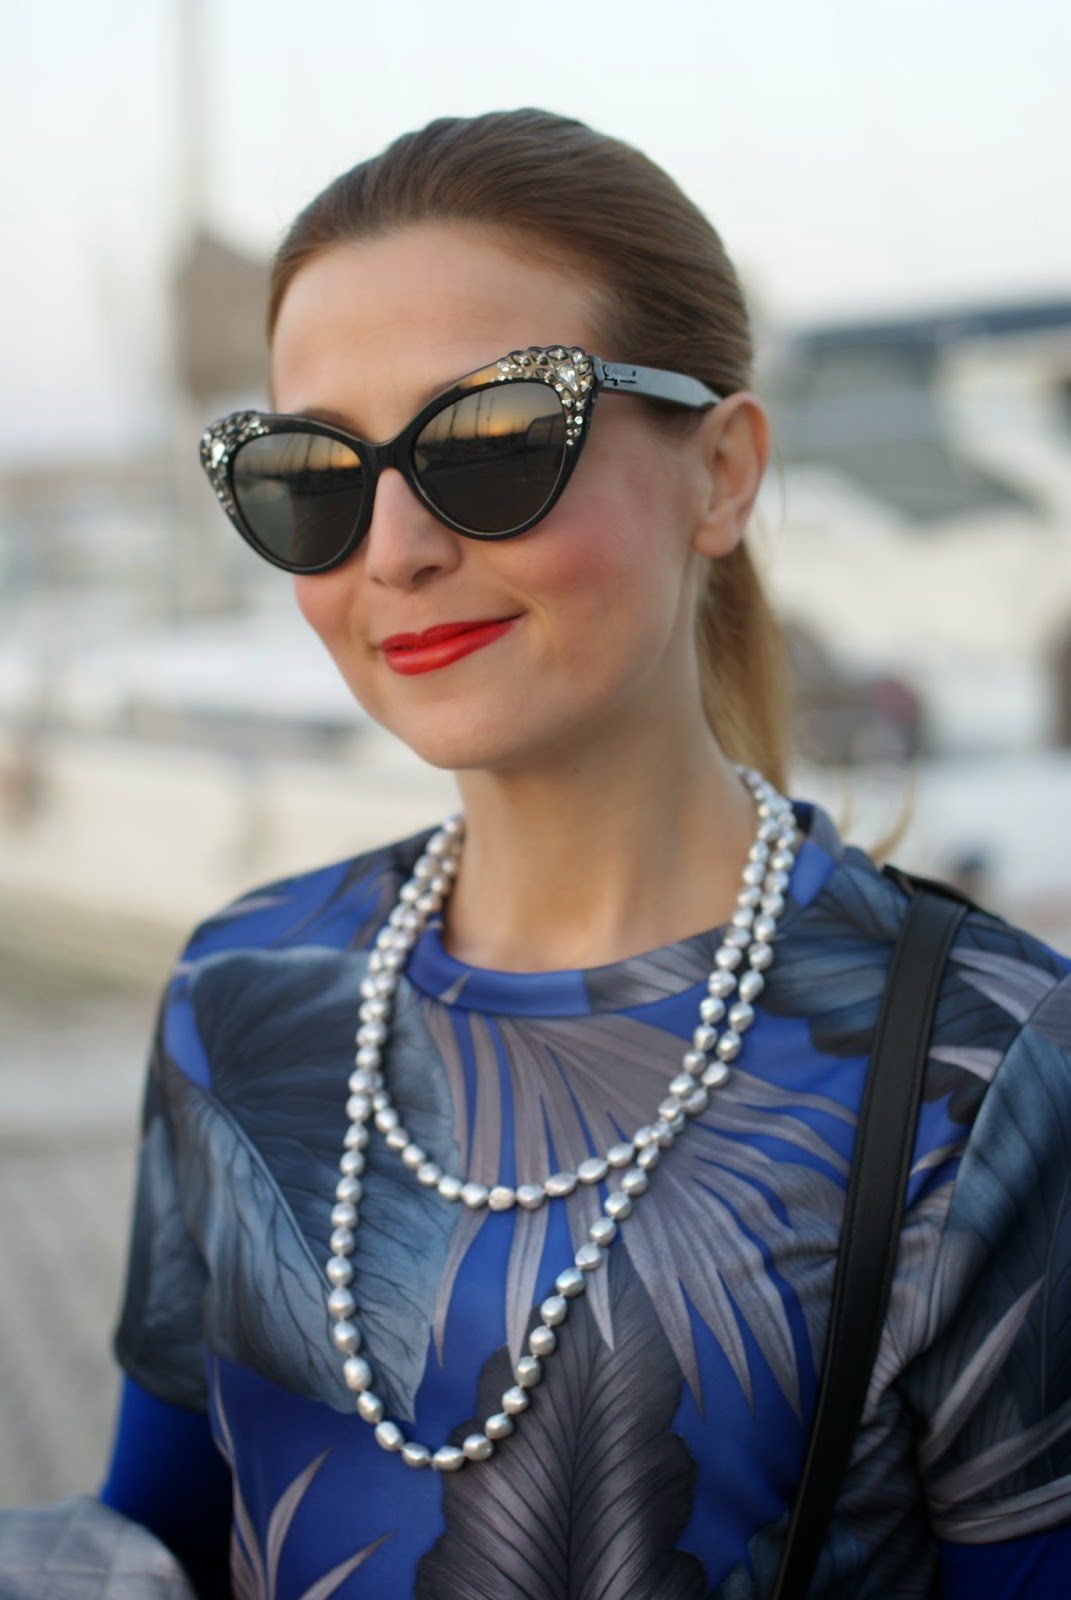 DSquared2 cat eye sunglasses found on Giarre, Pearl & Clasp necklace, silver pearls, Fashion and Cookies fashion blog, fashion blogger